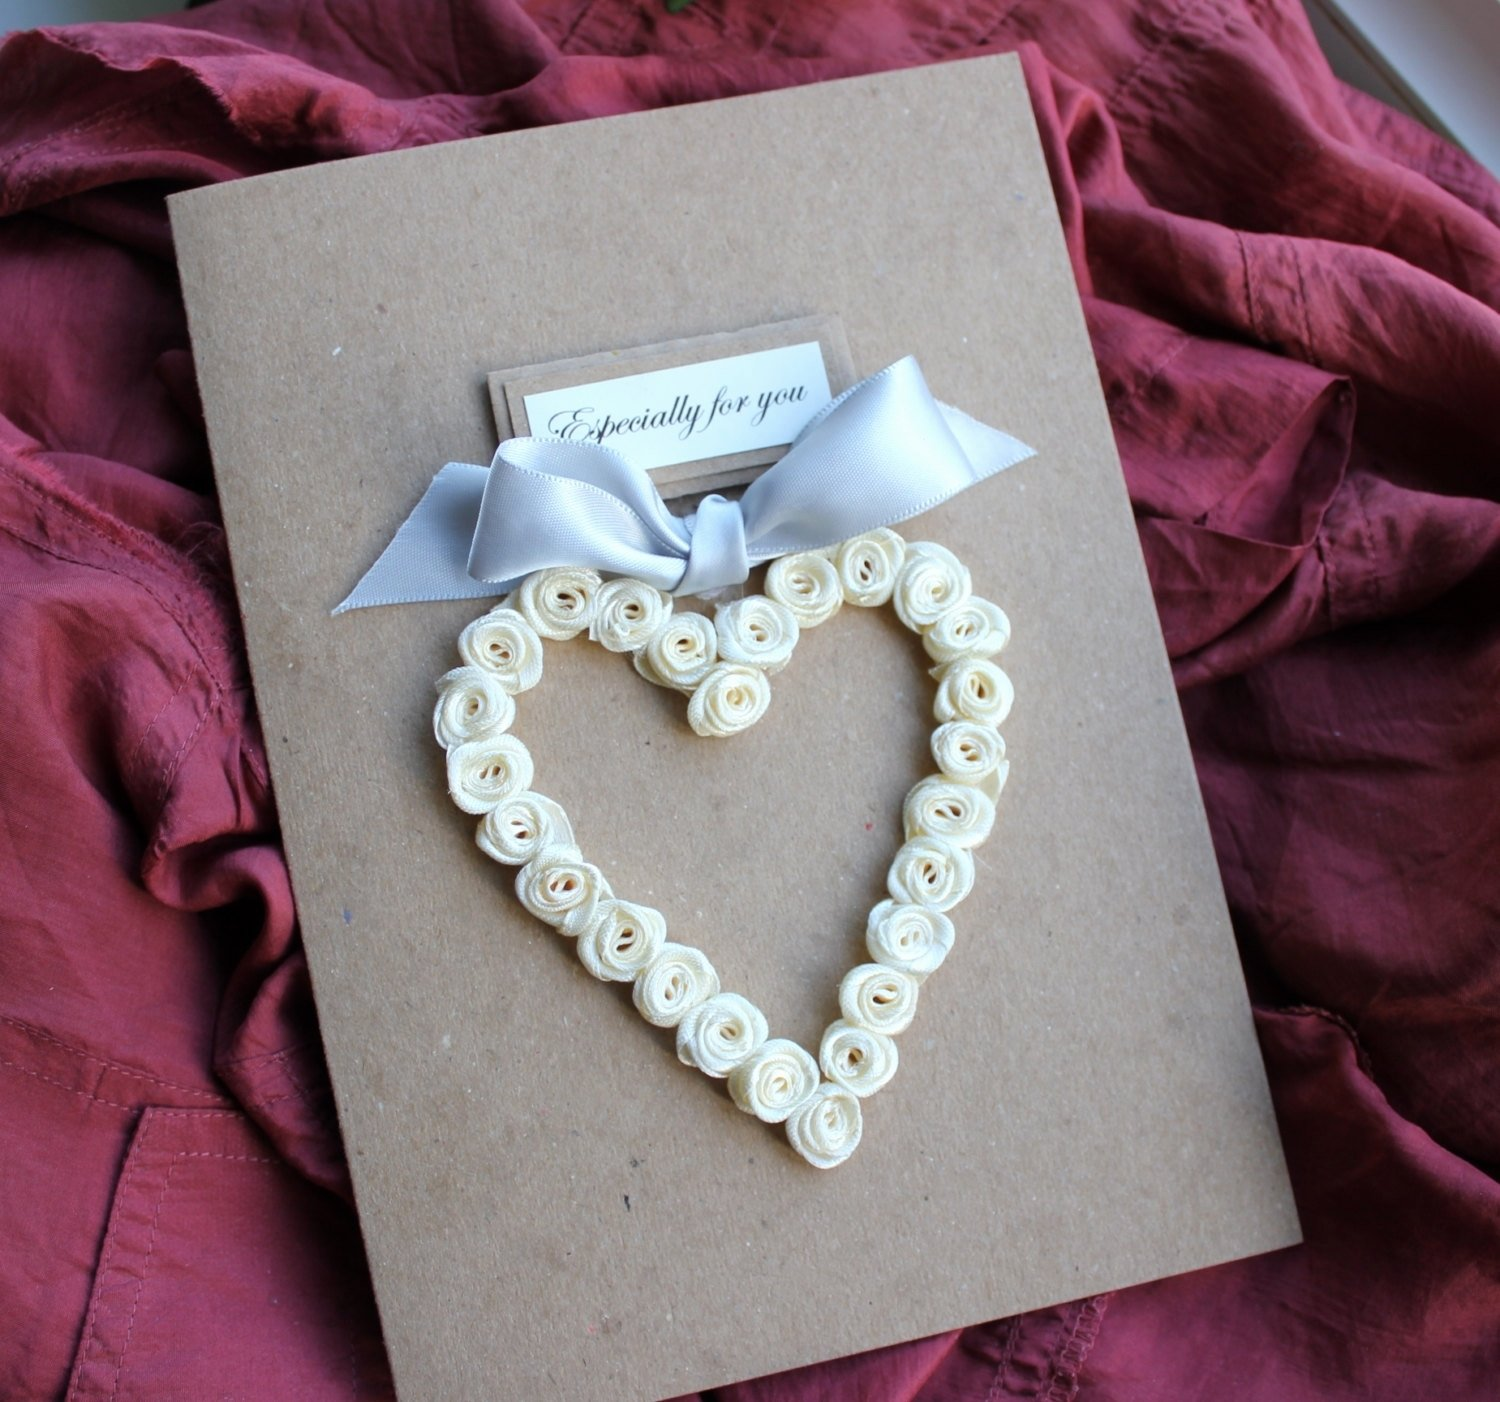 10 Awesome 2nd Year Anniversary Gift Ideas For Her